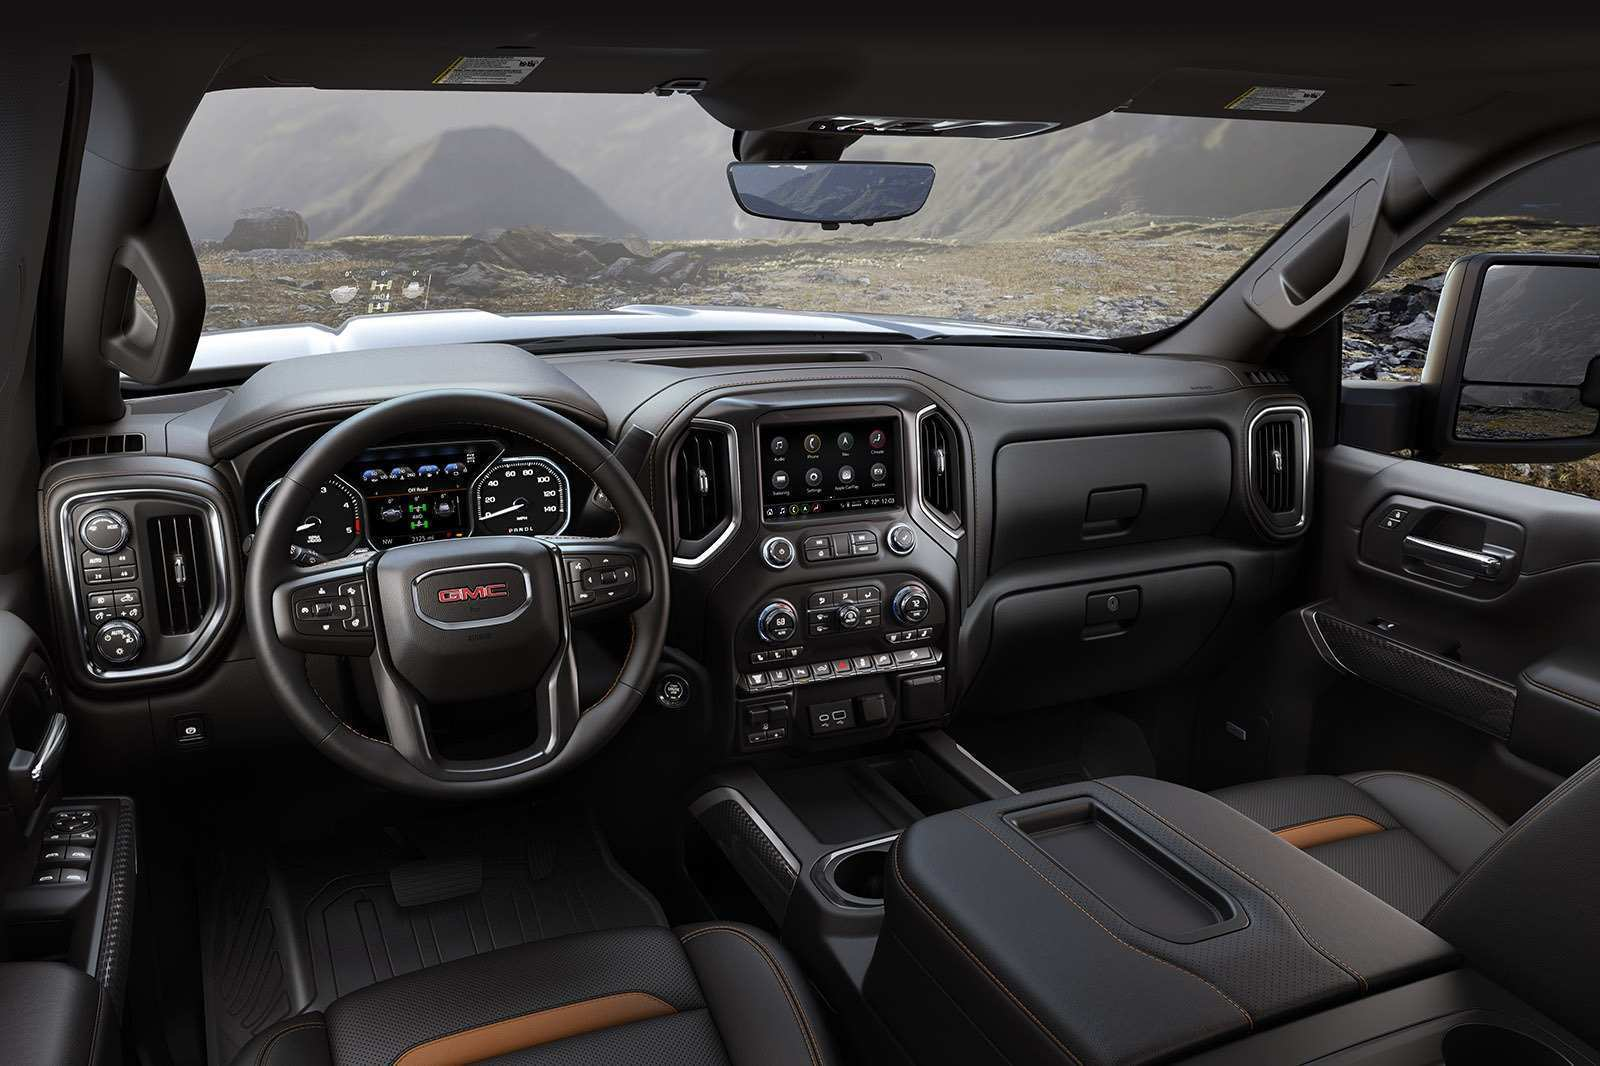 98 Best 2020 GMC Sierra 1500 Review And Release Date